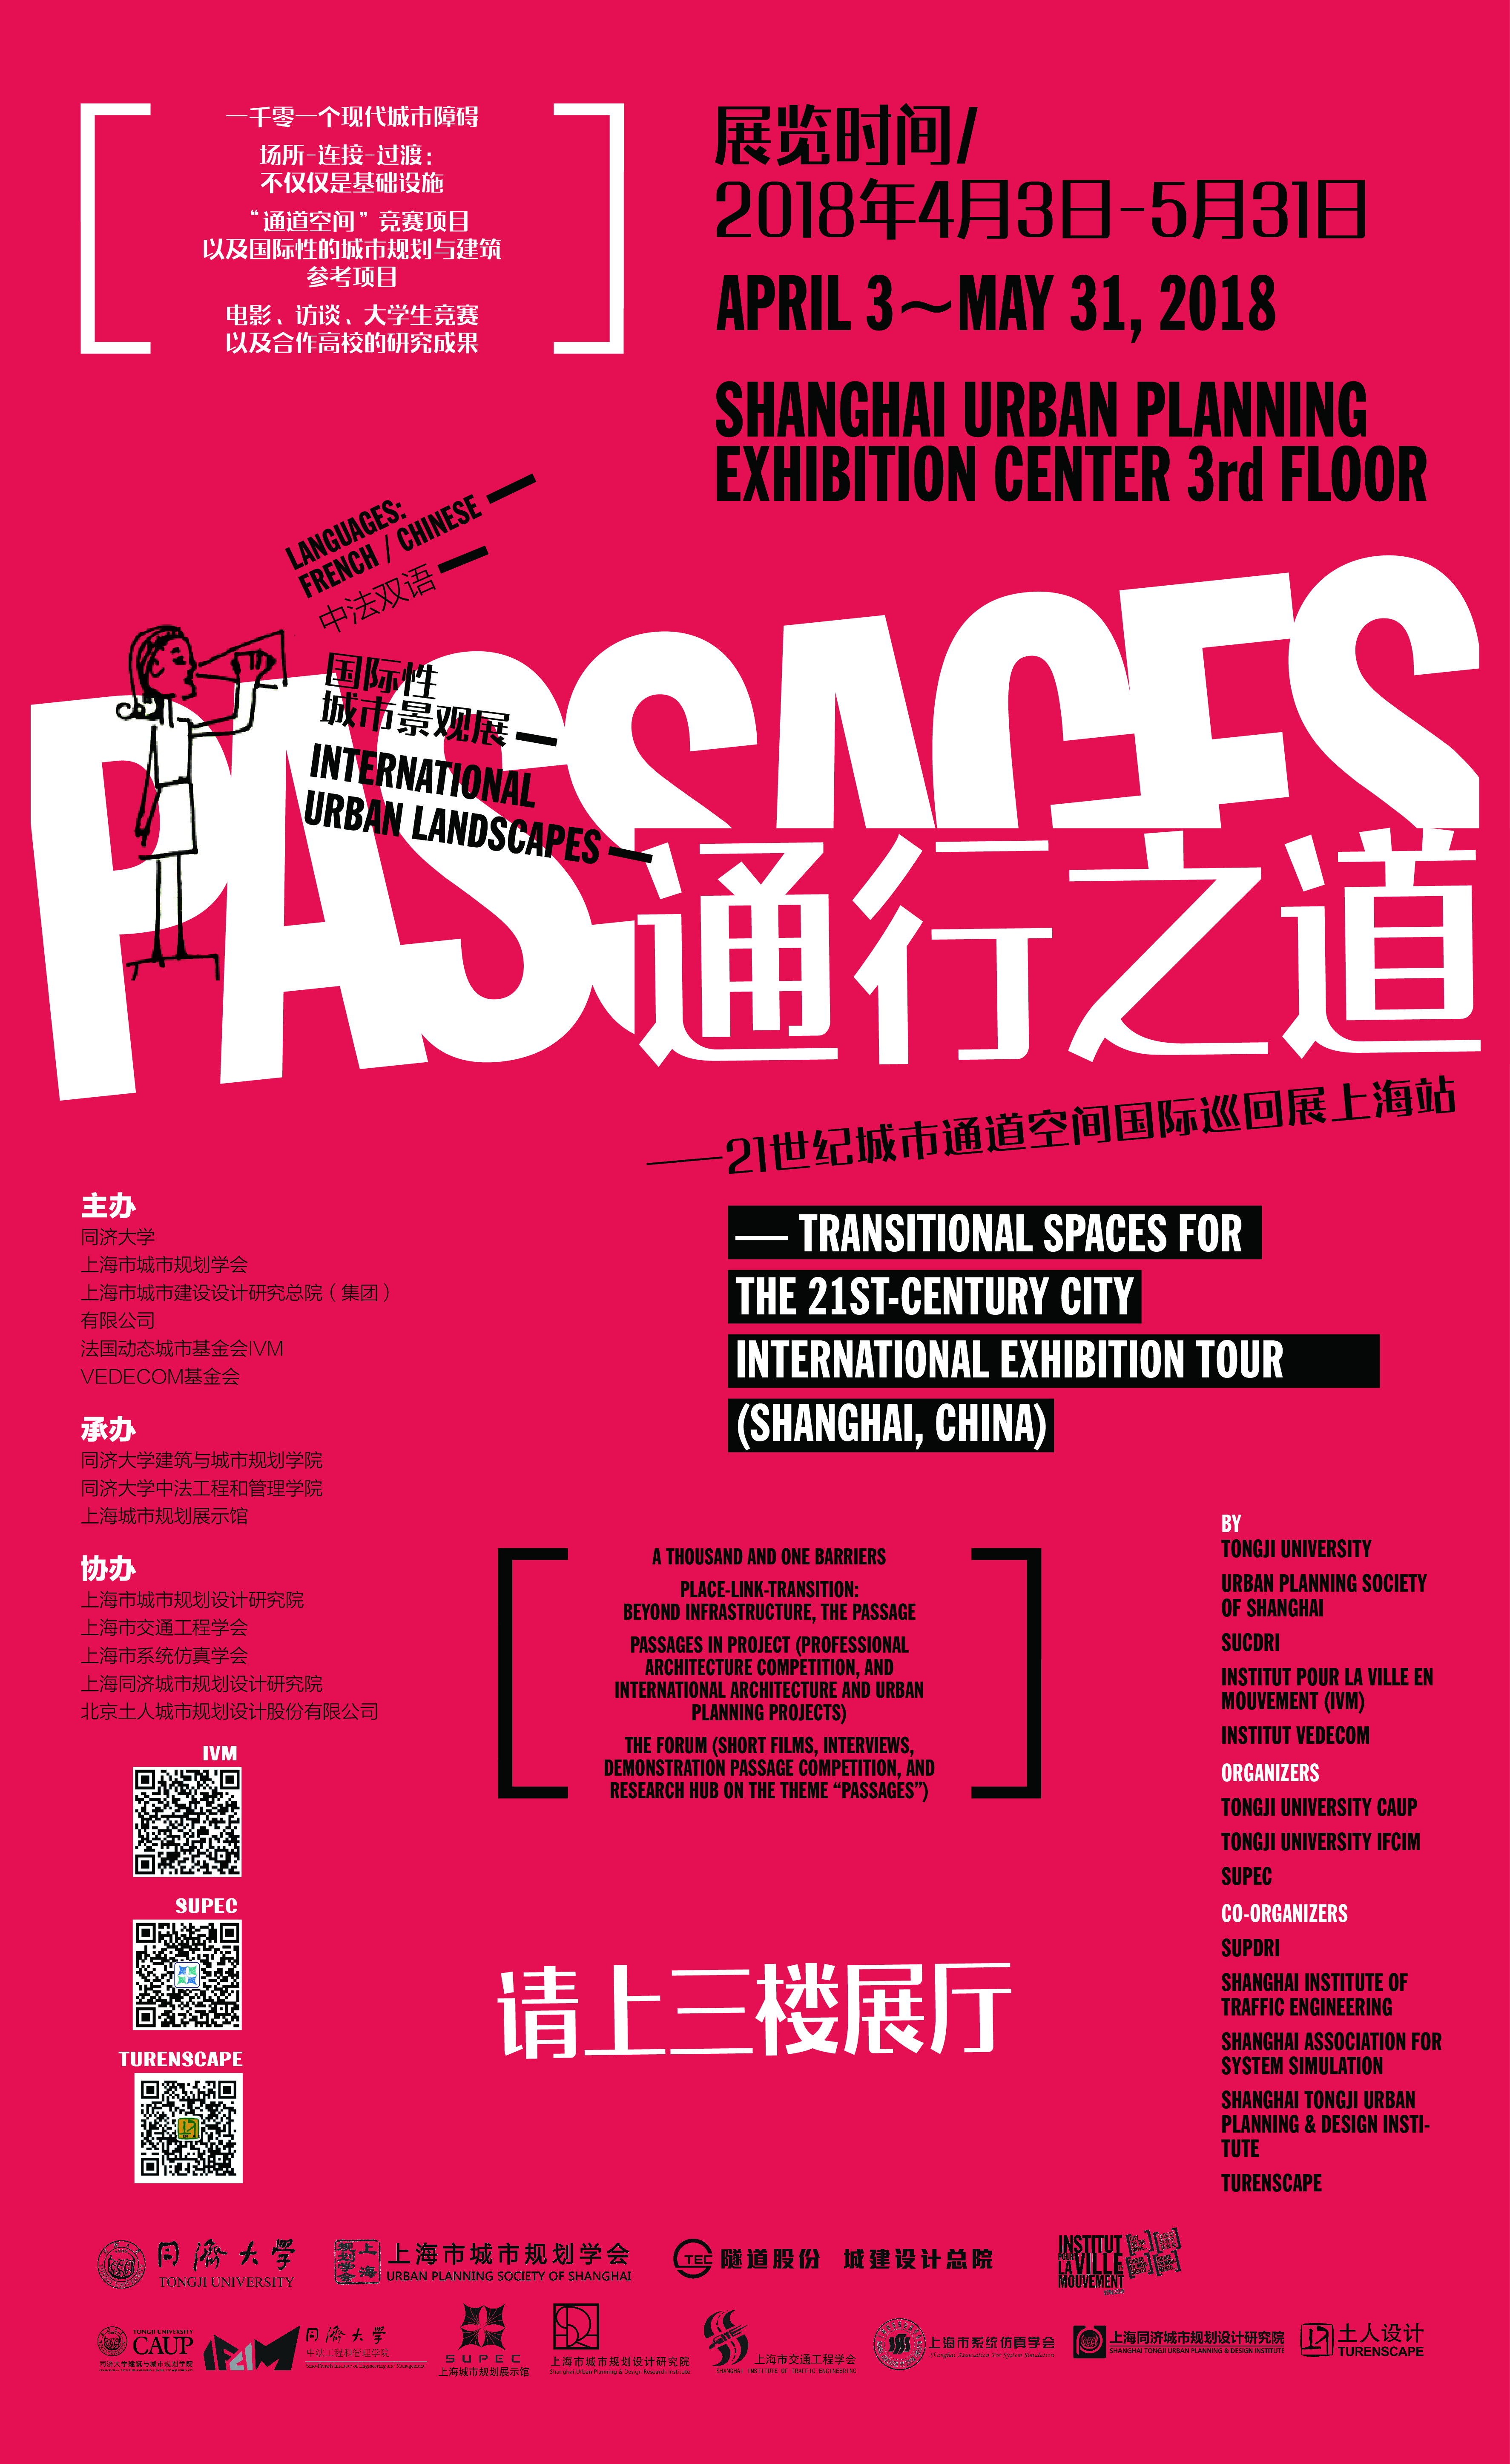 Shanghai rencontres websites in